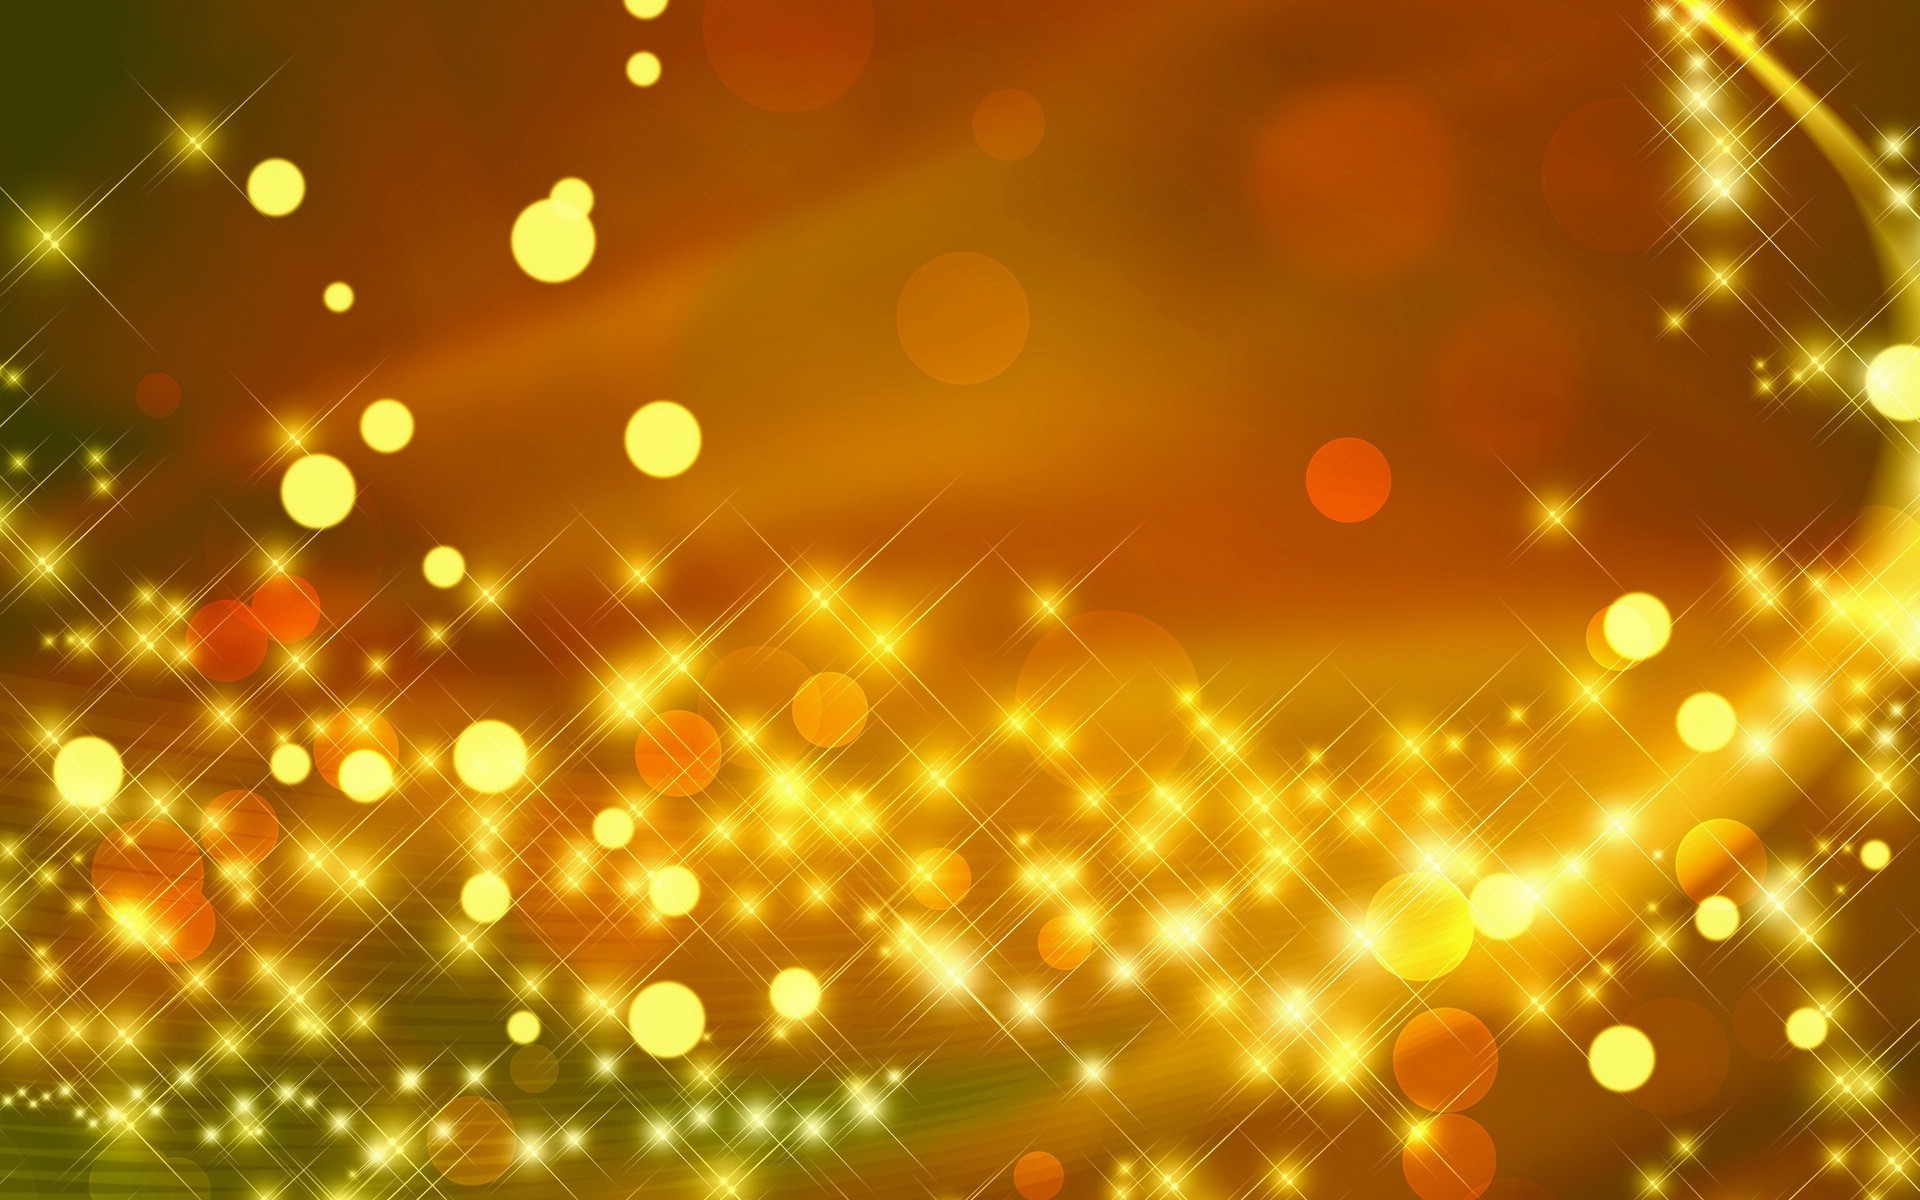 Golden Sparkles Light Circle Abstract Wallpapers Golden